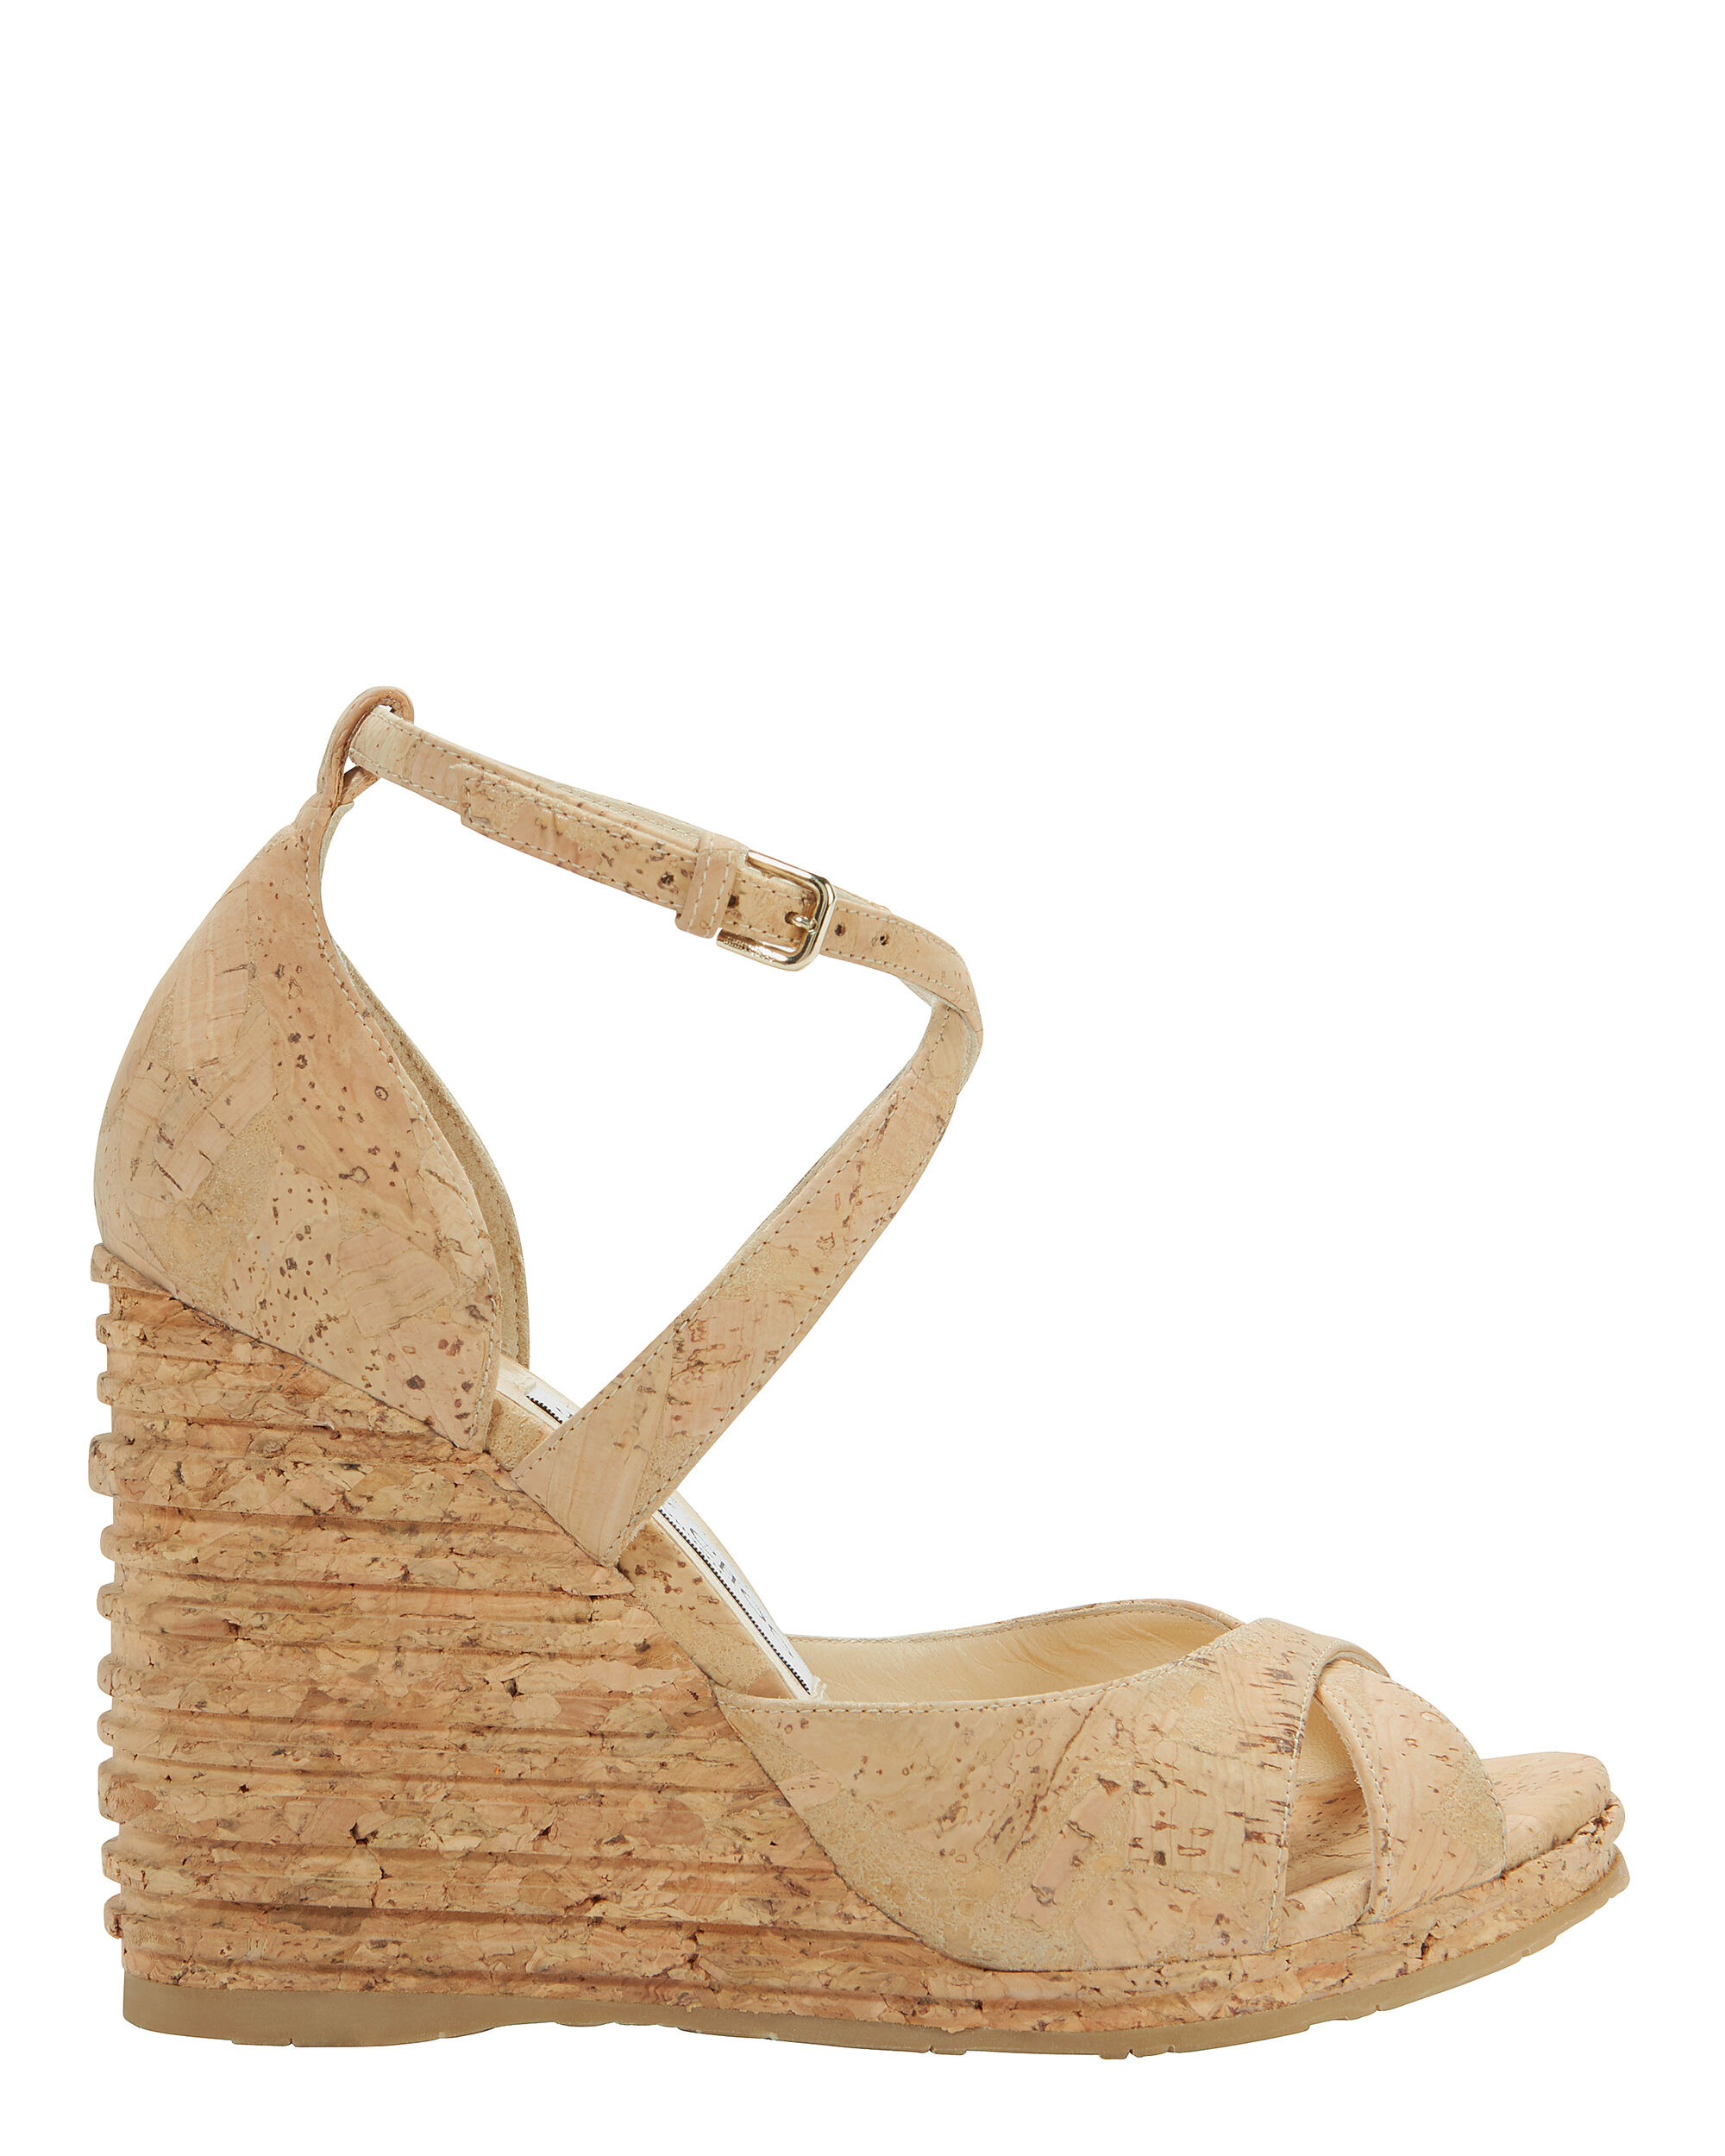 ALANAH CORK WEDGES BEIGE